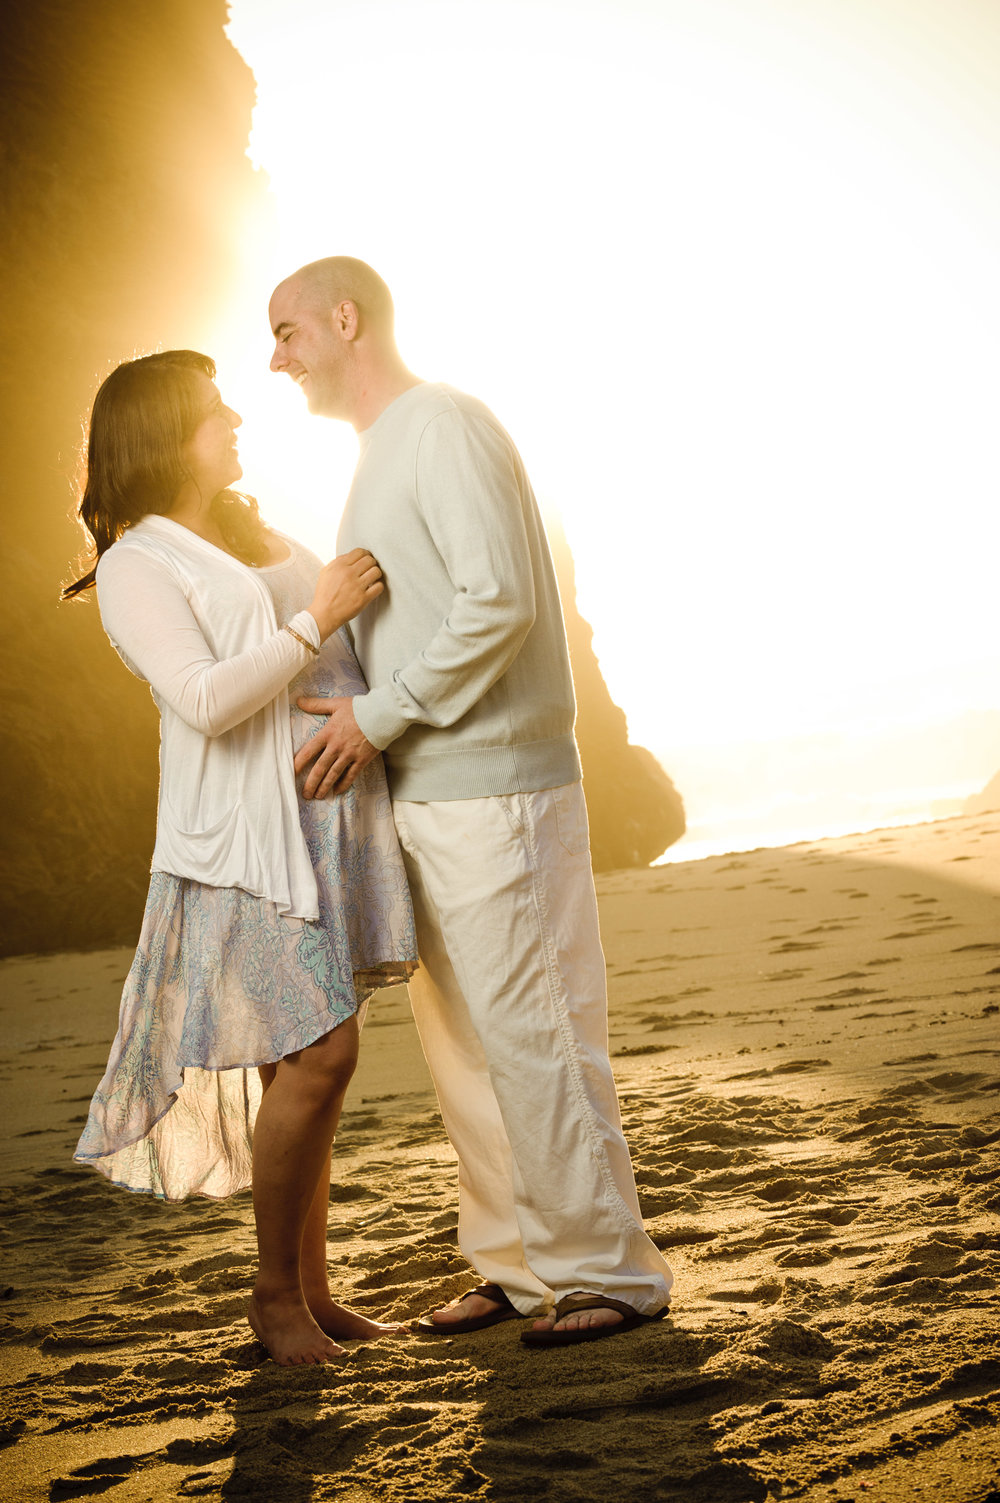 d3_Kim_and_Jon_Santa_Cruz_Maternity_Photography_Panther_Beach-7892.jpg